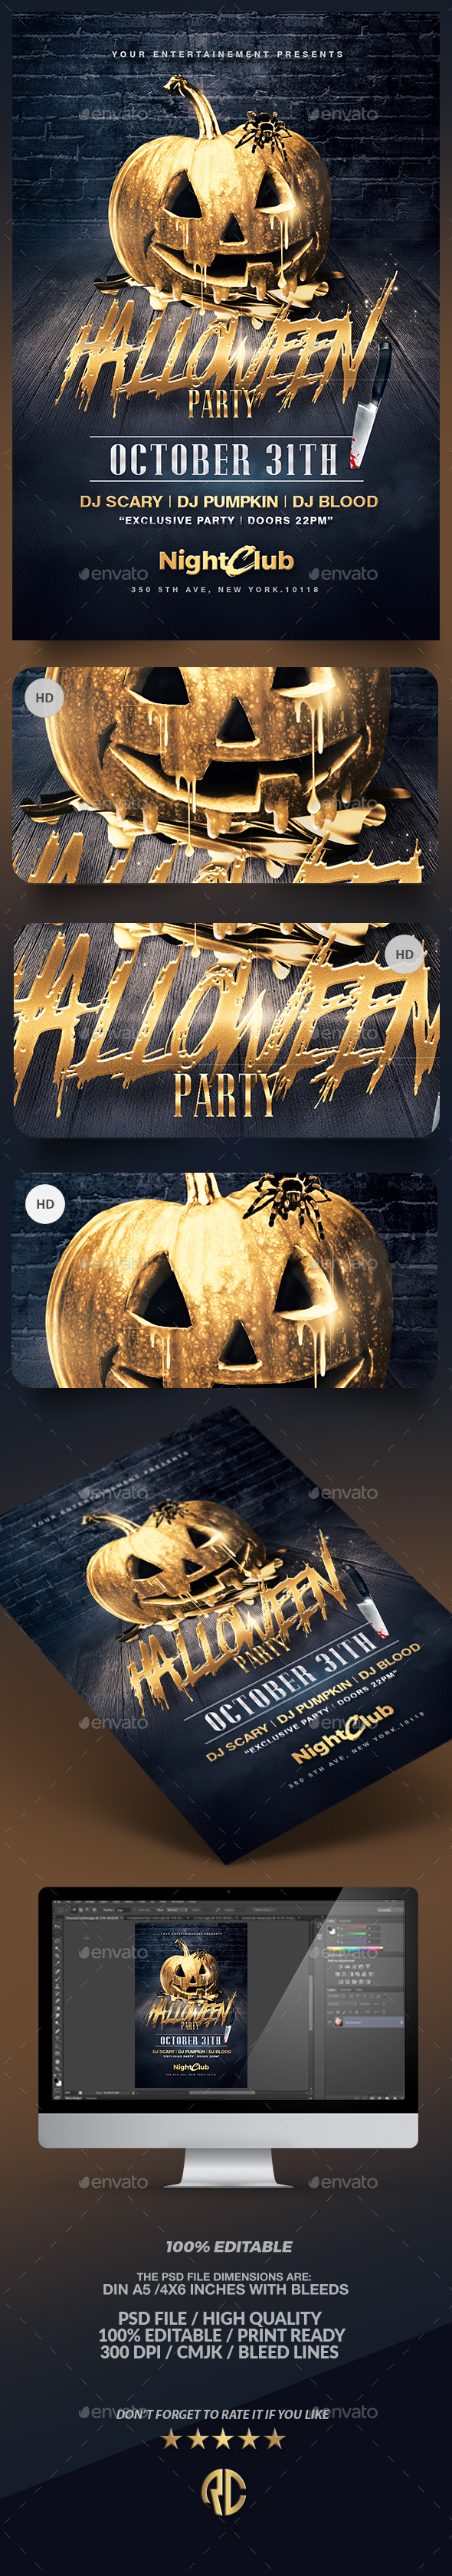 Halloween Party | Gold Pumpkin Template - Events Flyers